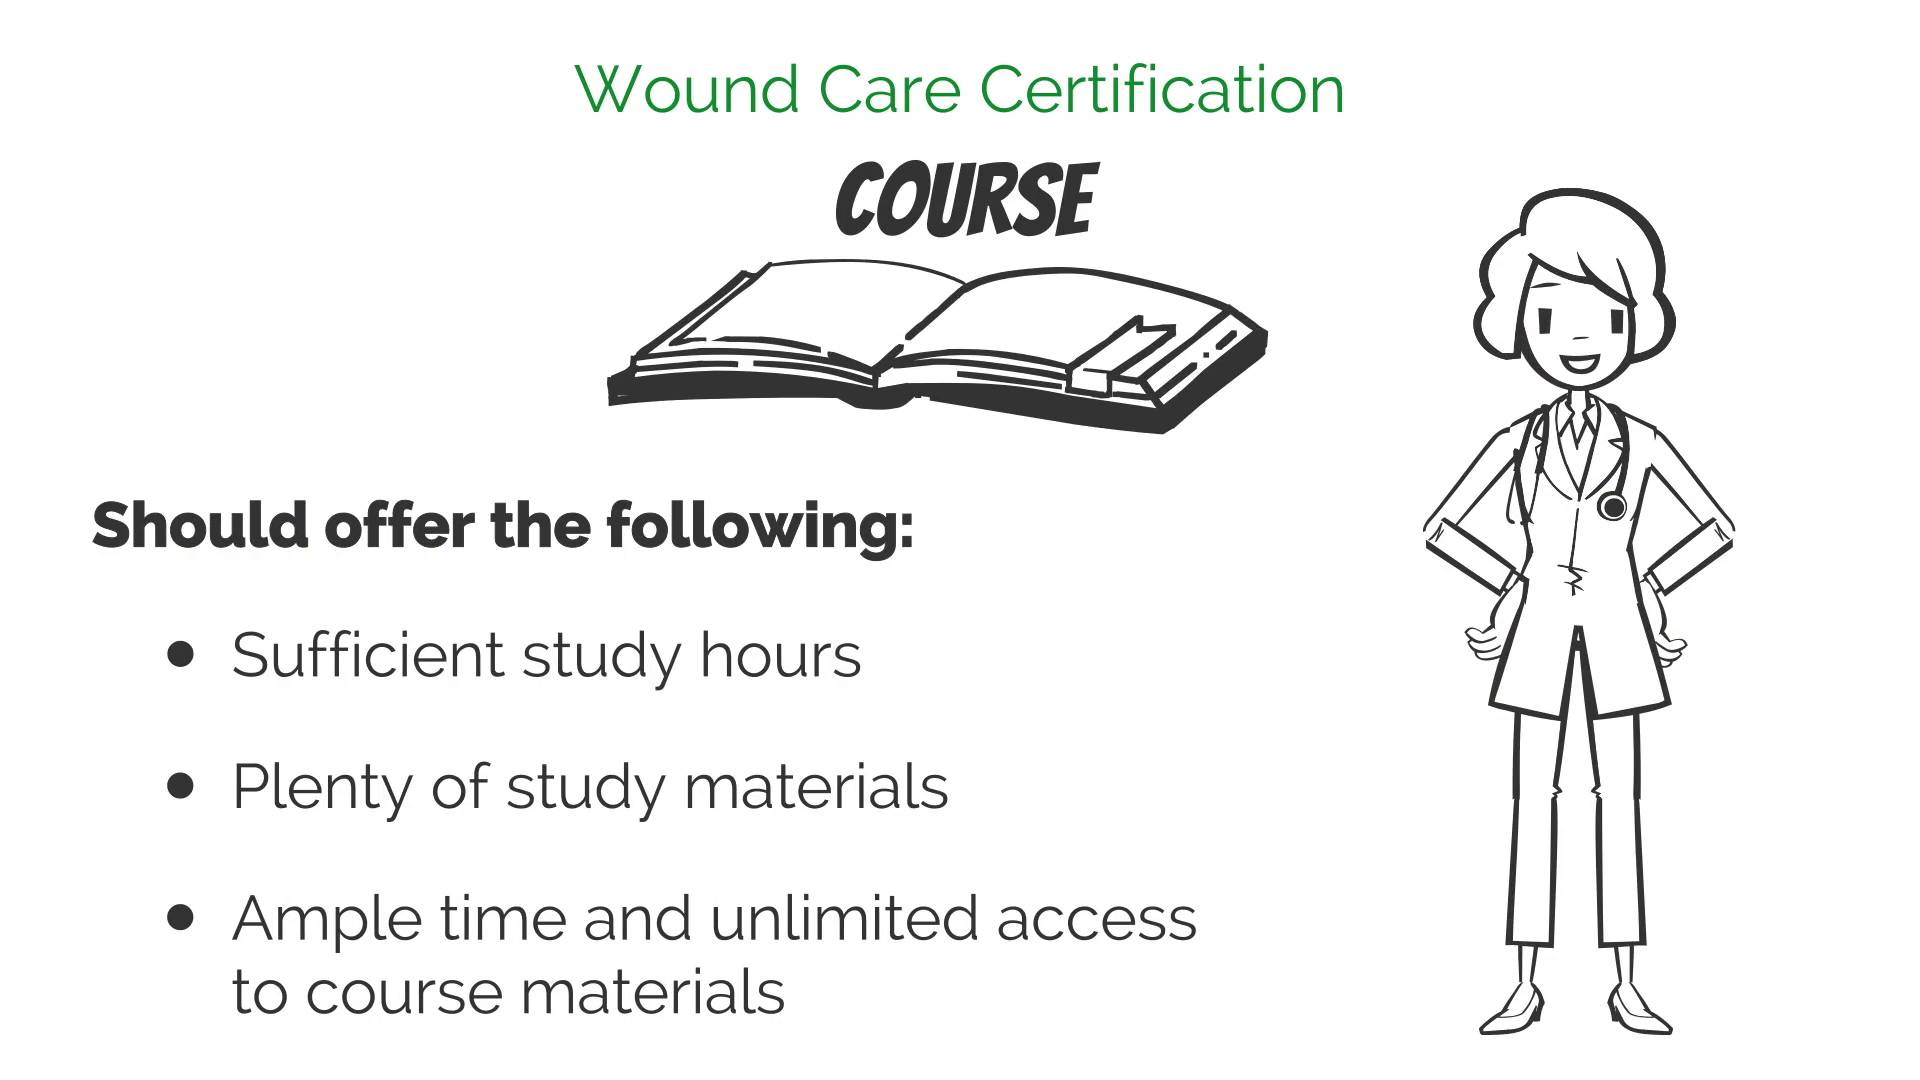 100 study guide for ccma exam best 25 pa ideas on pinterest study guide for ccma exam cna ma wound certification course certified for nursing wound care study guide for ccma exam xflitez Image collections